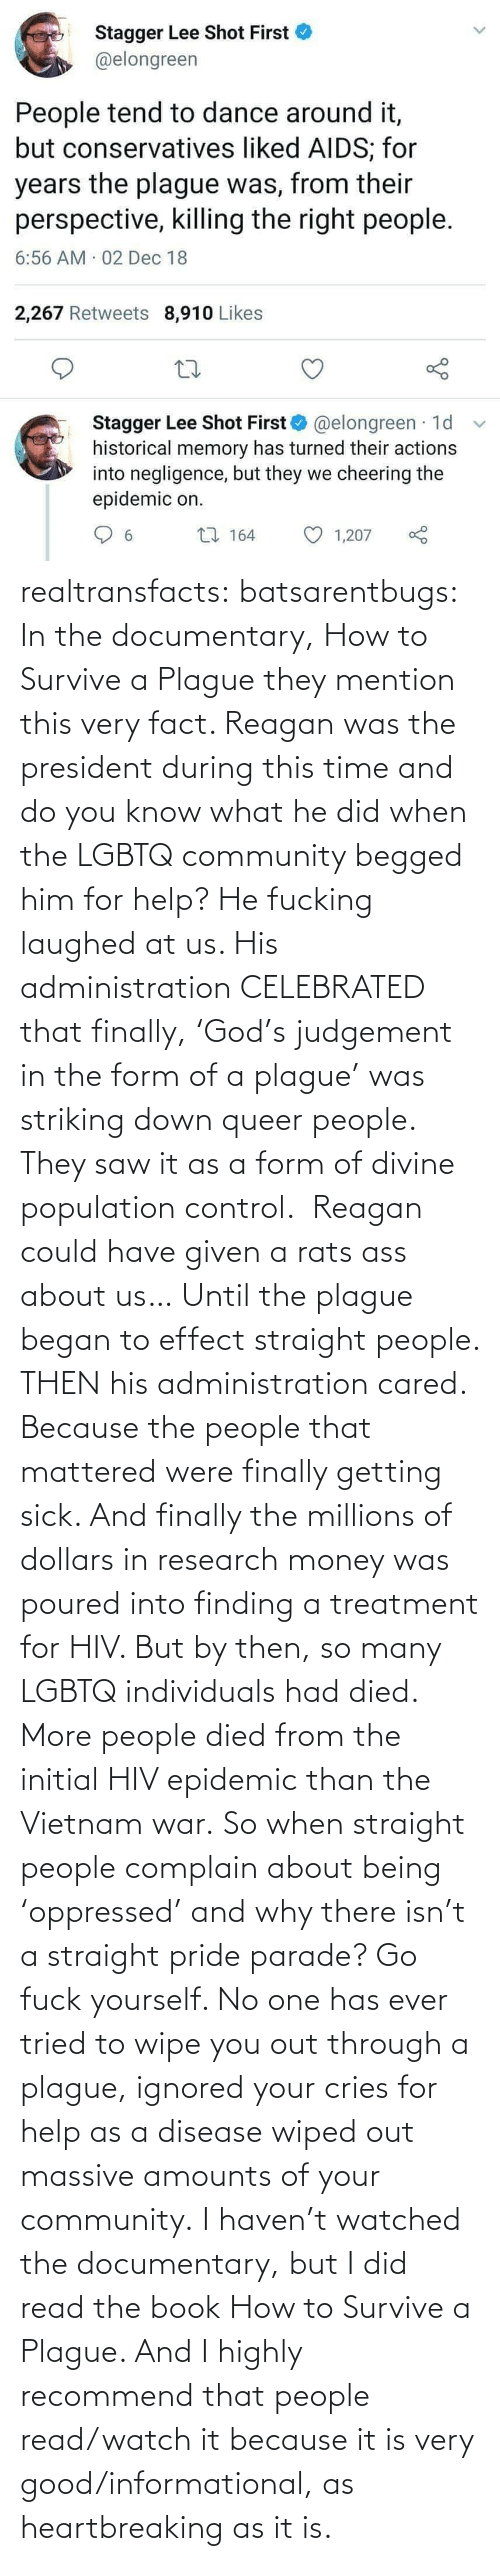 mattered: Stagger Lee Shot First  @elongreen  People tend to dance around it,  but conservatives liked AIDS; for  years the plague was, from their  perspective, killing the right people.  6:56 AM 02 Dec 18  2,267 Retweets 8,910 Likes  Stagger Lee Shot First O @elongreen · 1d  historical memory has turned their actions  into negligence, but they we cheering the  epidemic on.  27 164  1,207  6. realtransfacts:  batsarentbugs:  In the documentary, How to Survive a Plague they mention this very fact. Reagan was the president during this time and do you know what he did when the LGBTQ community begged him for help? He fucking laughed at us. His administration CELEBRATED that finally, 'God's judgement in the form of a plague' was striking down queer people.  They saw it as a form of divine population control.  Reagan could have given a rats ass about us… Until the plague began to effect straight people. THEN his administration cared. Because the people that mattered were finally getting sick. And finally the millions of dollars in research money was poured into finding a treatment for HIV. But by then, so many LGBTQ individuals had died.  More people died from the initial HIV epidemic than the Vietnam war. So when straight people complain about being 'oppressed' and why there isn't a straight pride parade? Go fuck yourself. No one has ever tried to wipe you out through a plague, ignored your cries for help as a disease wiped out massive amounts of your community.  I haven't watched the documentary, but I did read the book  How to Survive a Plague. And I highly recommend that people read/watch it because it is very good/informational, as heartbreaking as it is.